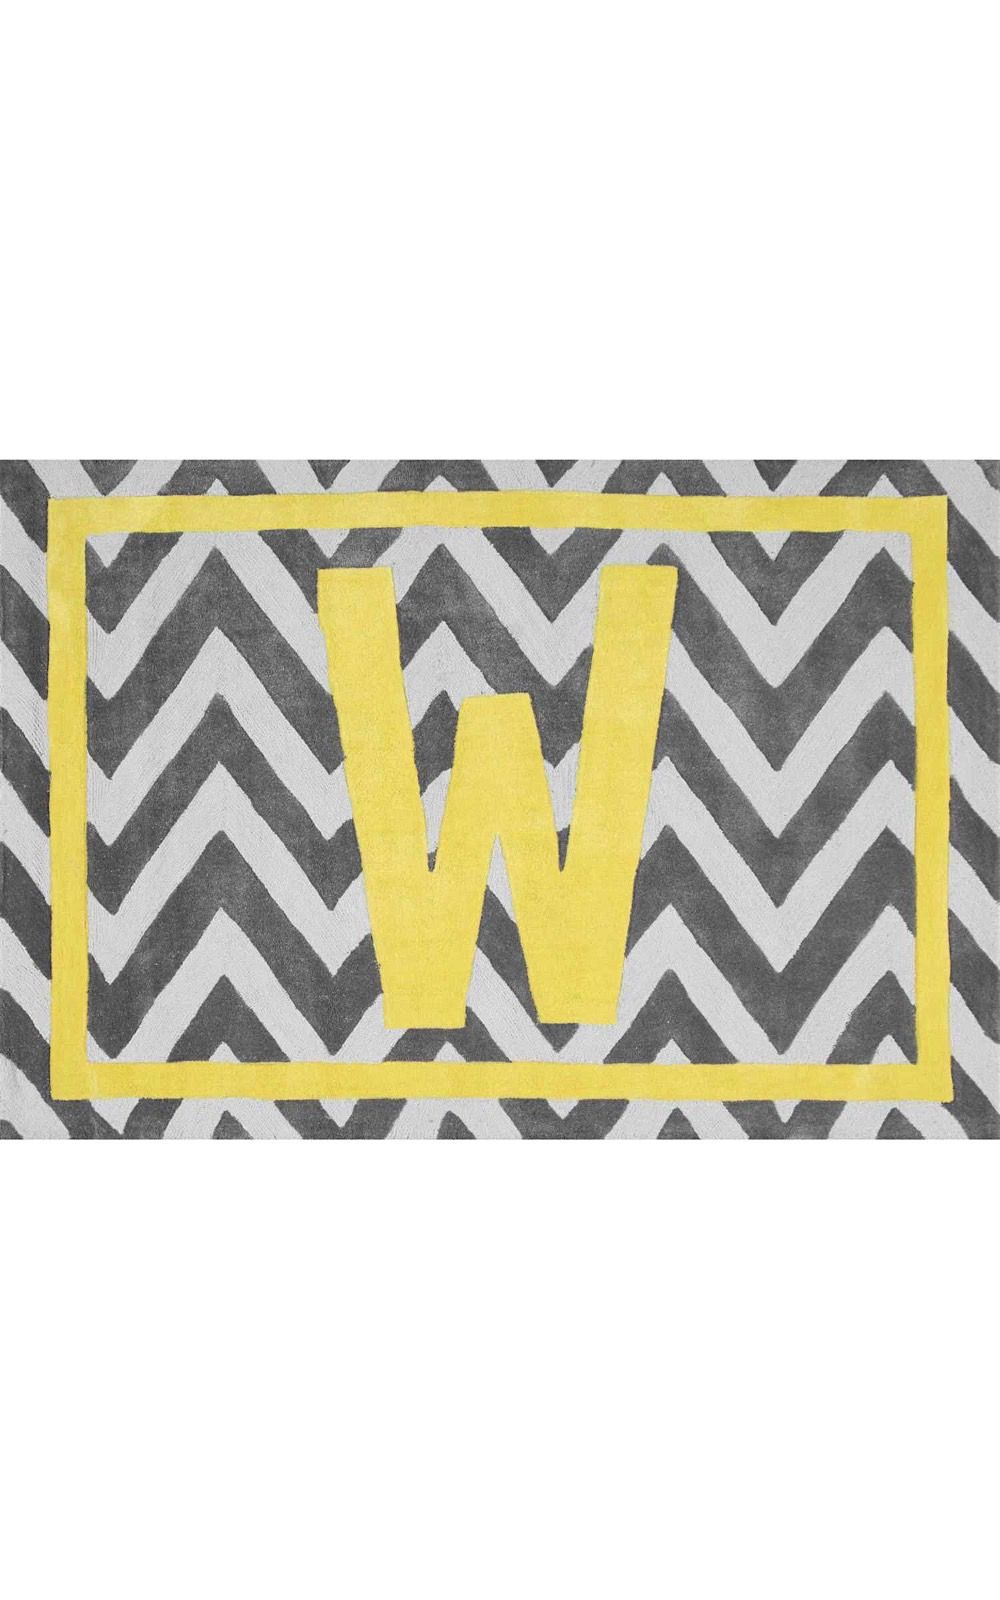 nuloom monogrammed chevron letter indoor/outdoor area rug collection